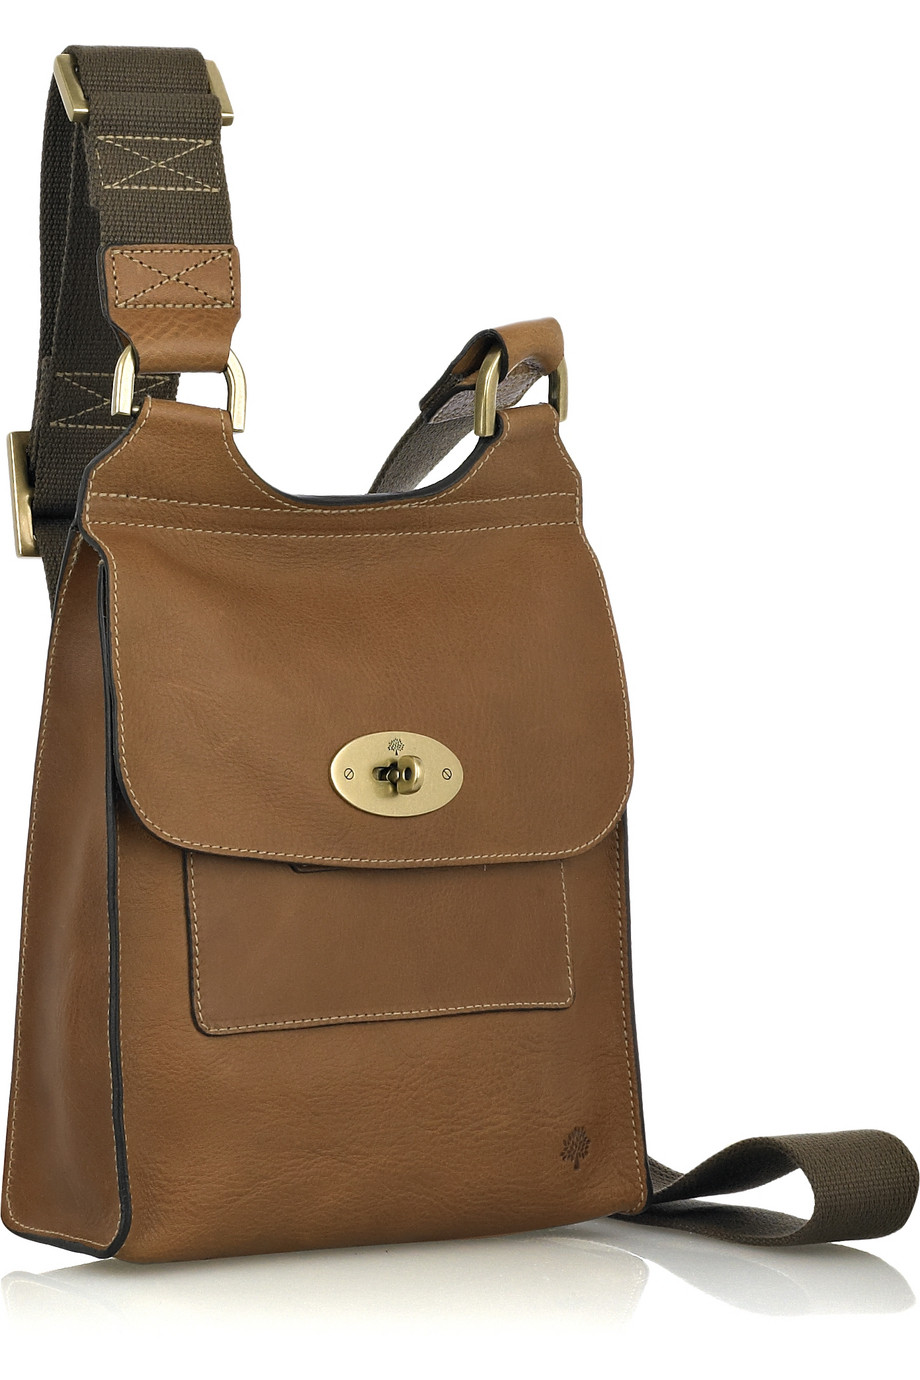 f702676ff880 Mulberry Antony Leather Cross-body Bag in Brown - Lyst